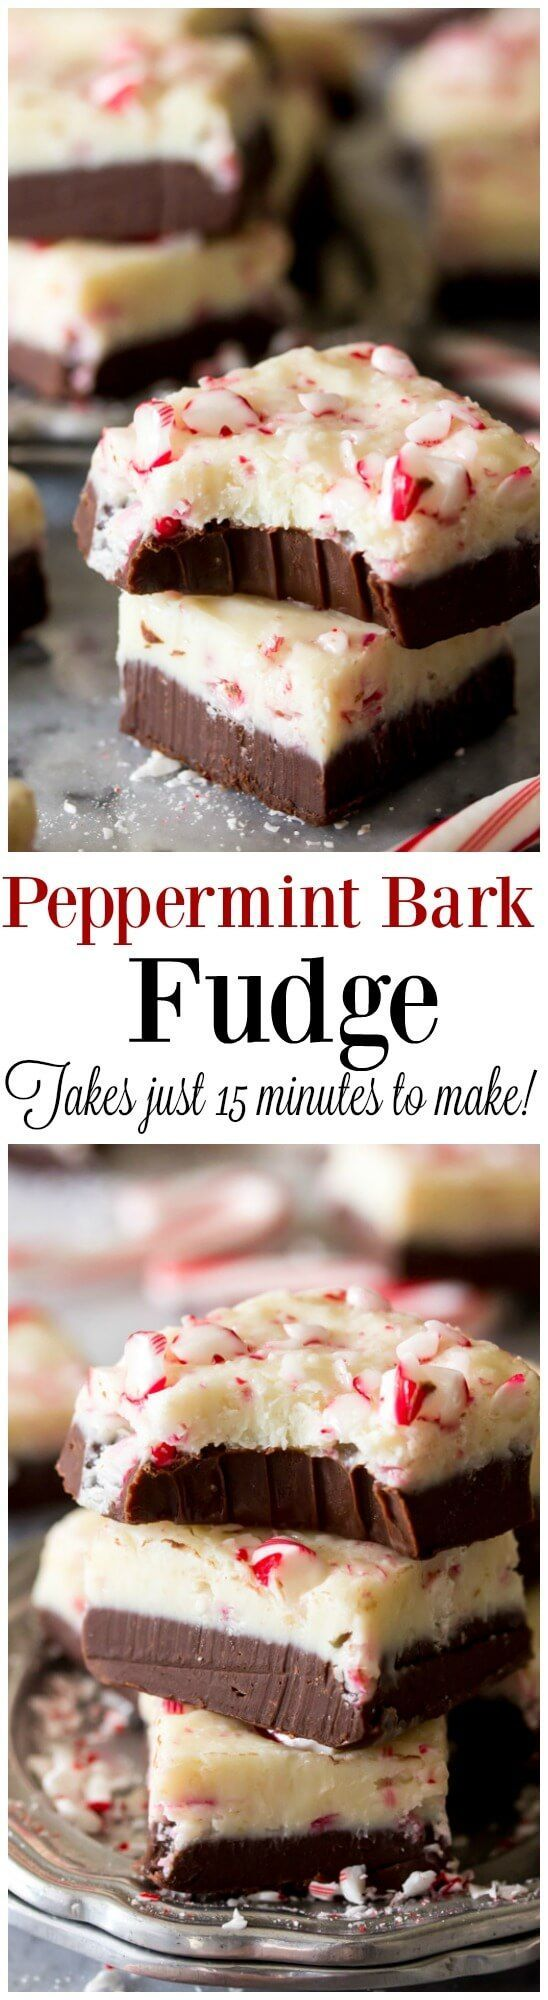 peppermint-bark-fudge-made-in-just-15-minutes-without-a-candy-thermometer-sugar-spun-run